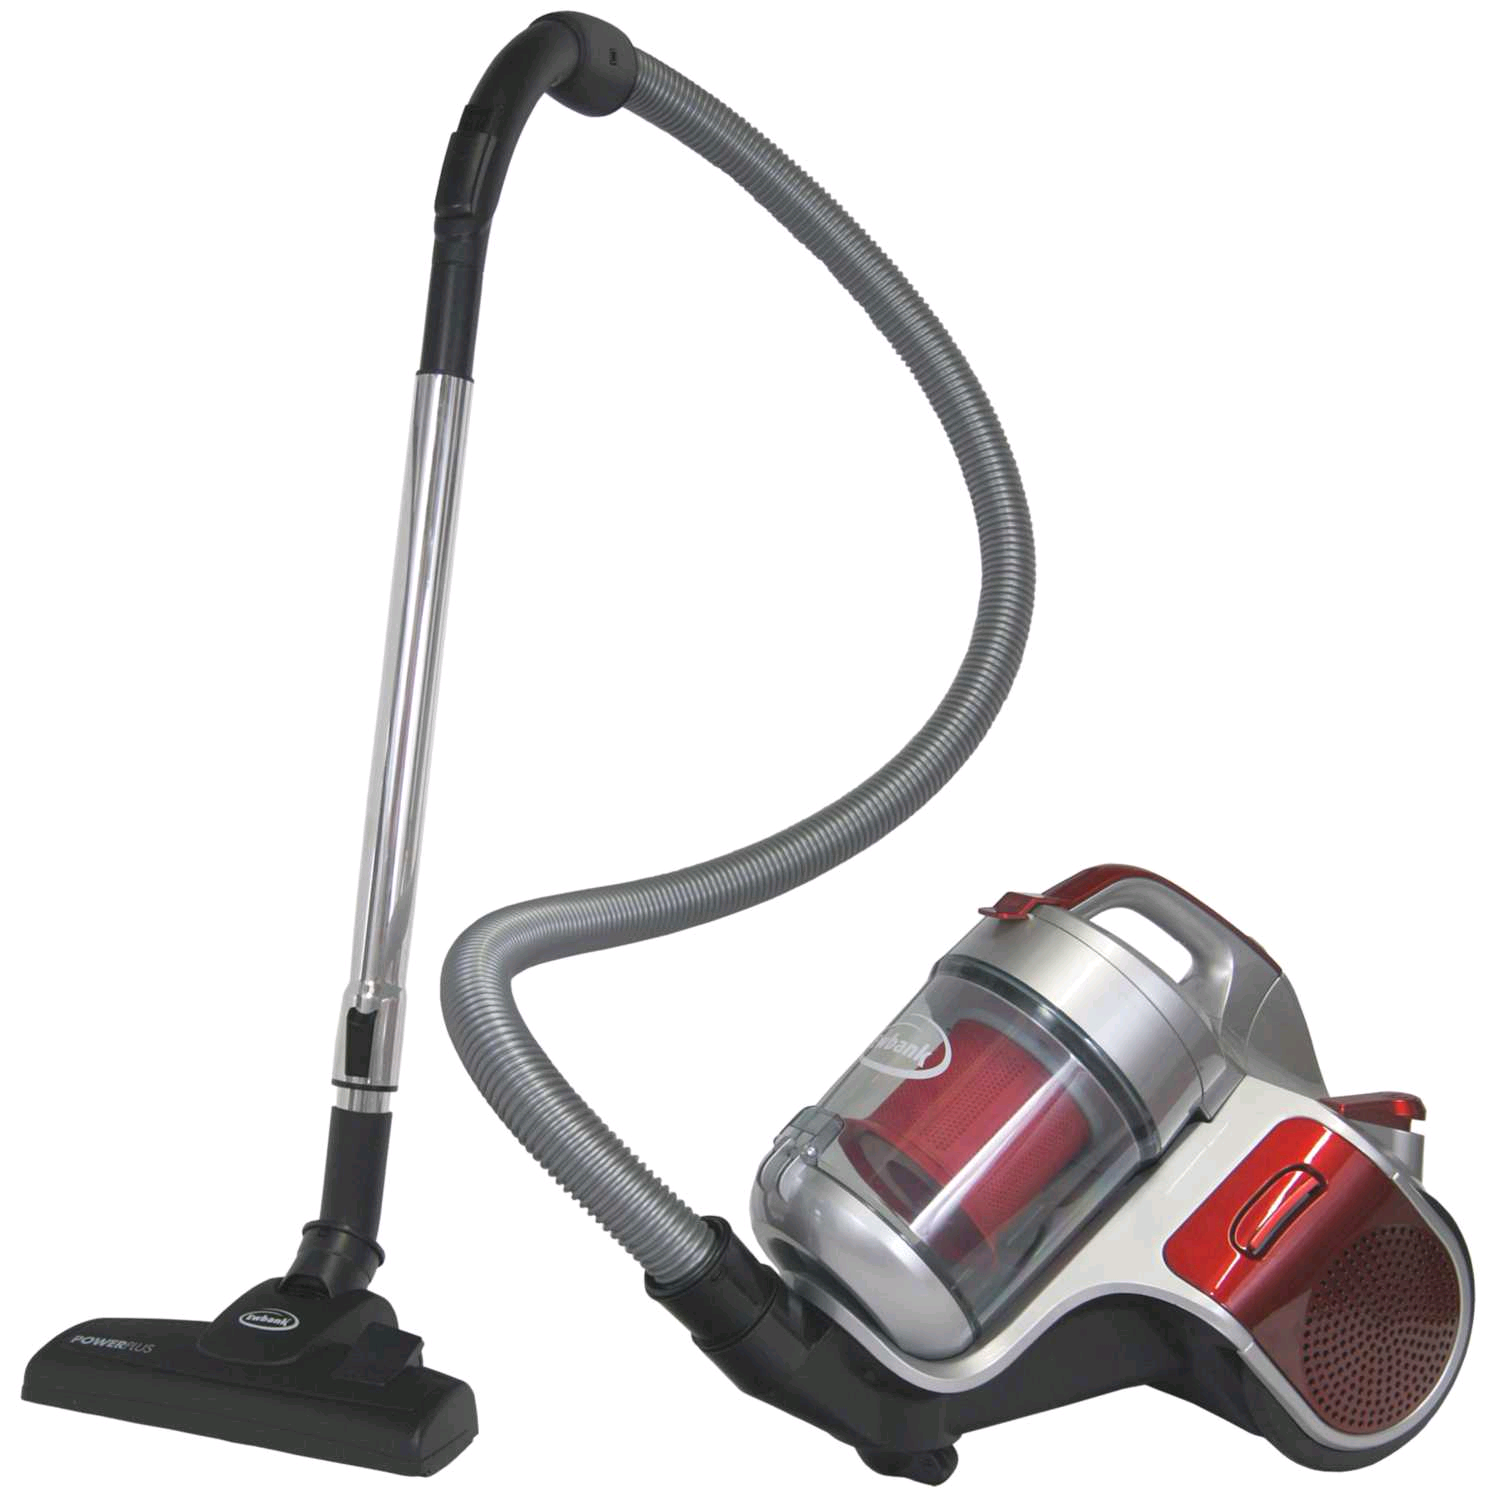 Ewbank EW3015 800W BAGLESS CYLINDER VACUUM CLEANER - SILVER/RED